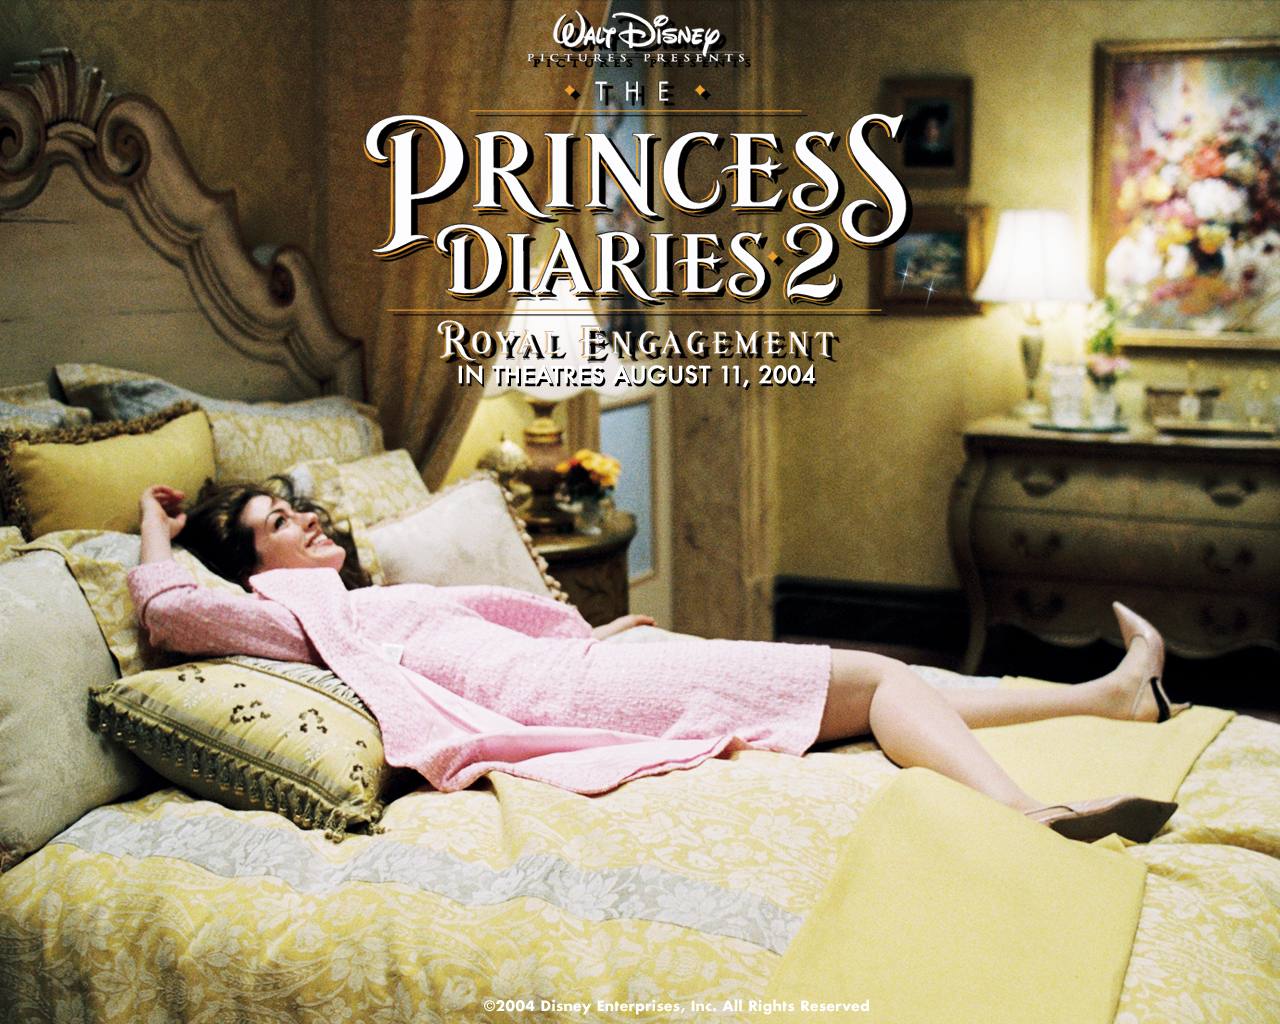 Anne Hathaway in The Princess Diaries 2 Royal Engagement Wallpaper 1280x960